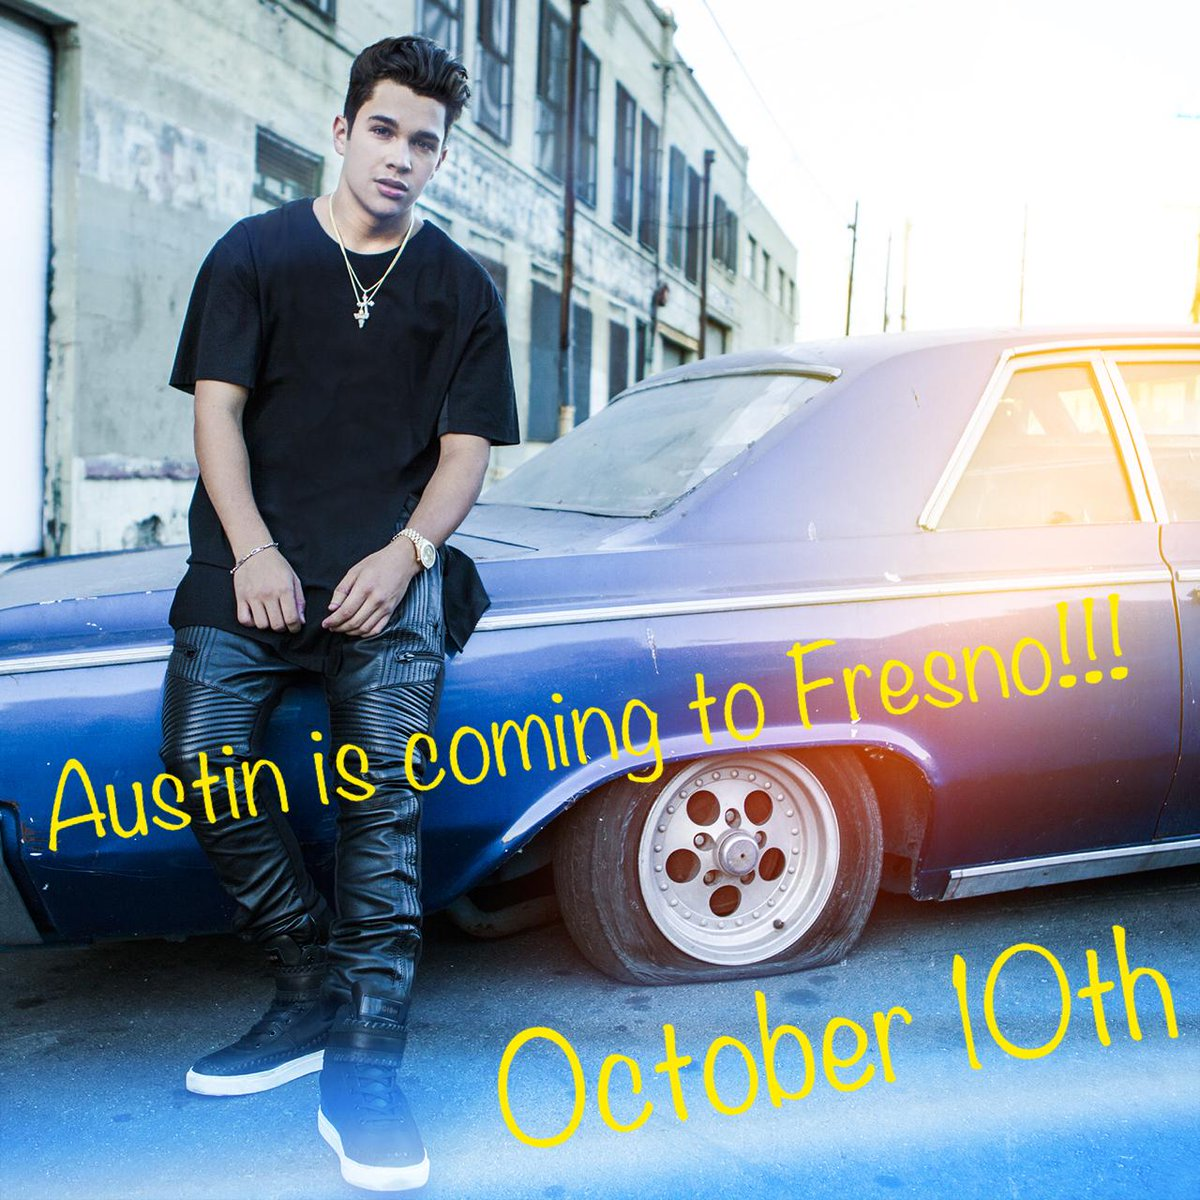 Did you hear? @AustinMahone is coming to the #2015BFF! Pre-Sale starts 7/29 for Big Fair Fan Club Members! http://t.co/jB9sKQYARO